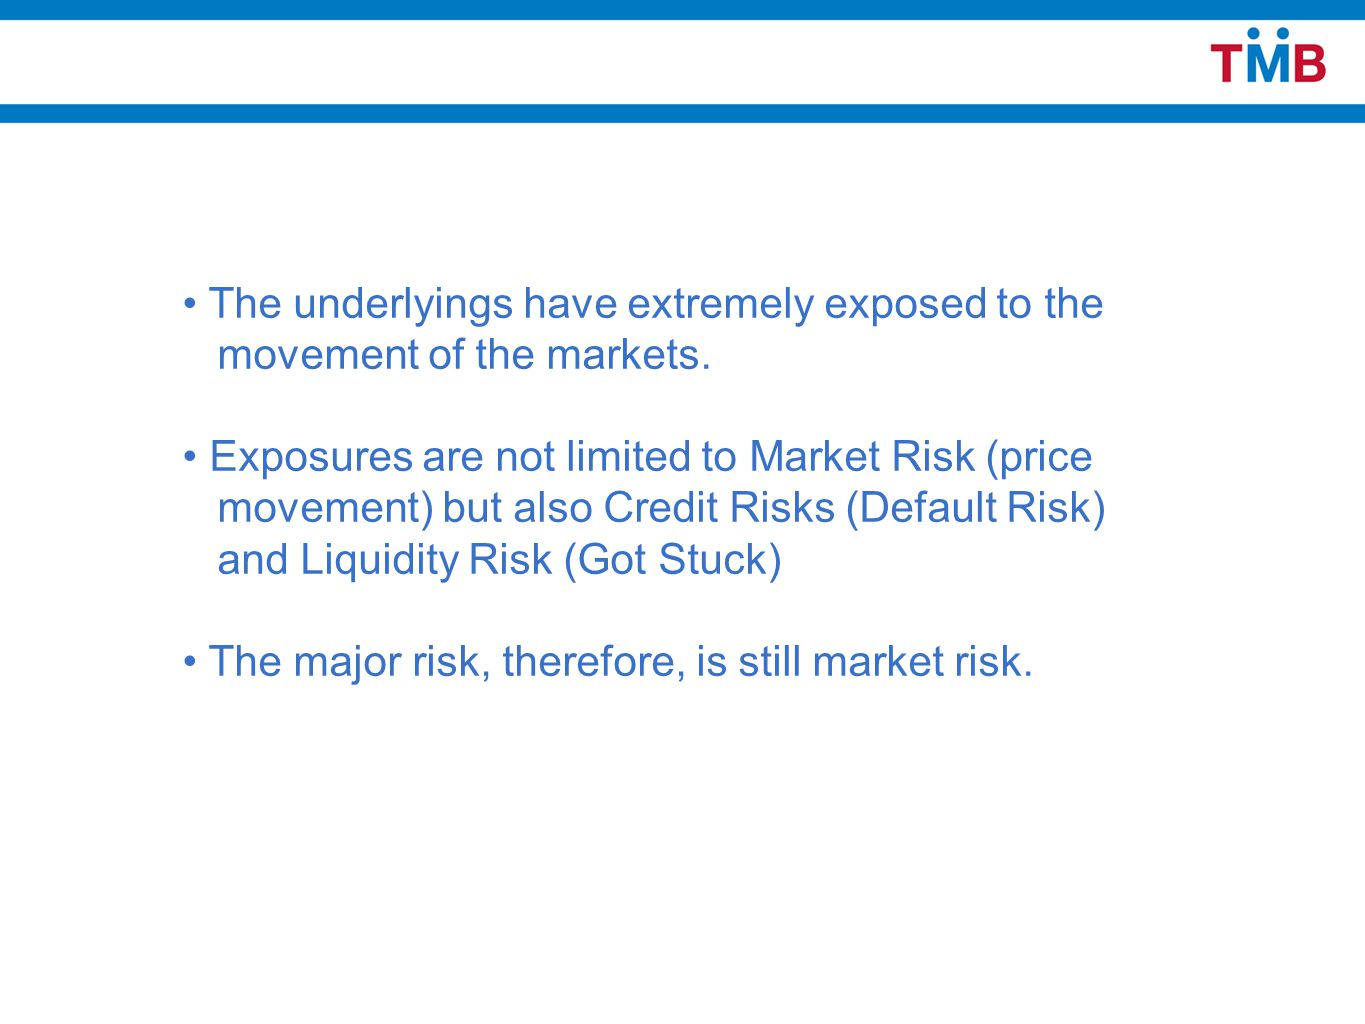 The underlyings have extremely exposed to the movement of the markets.